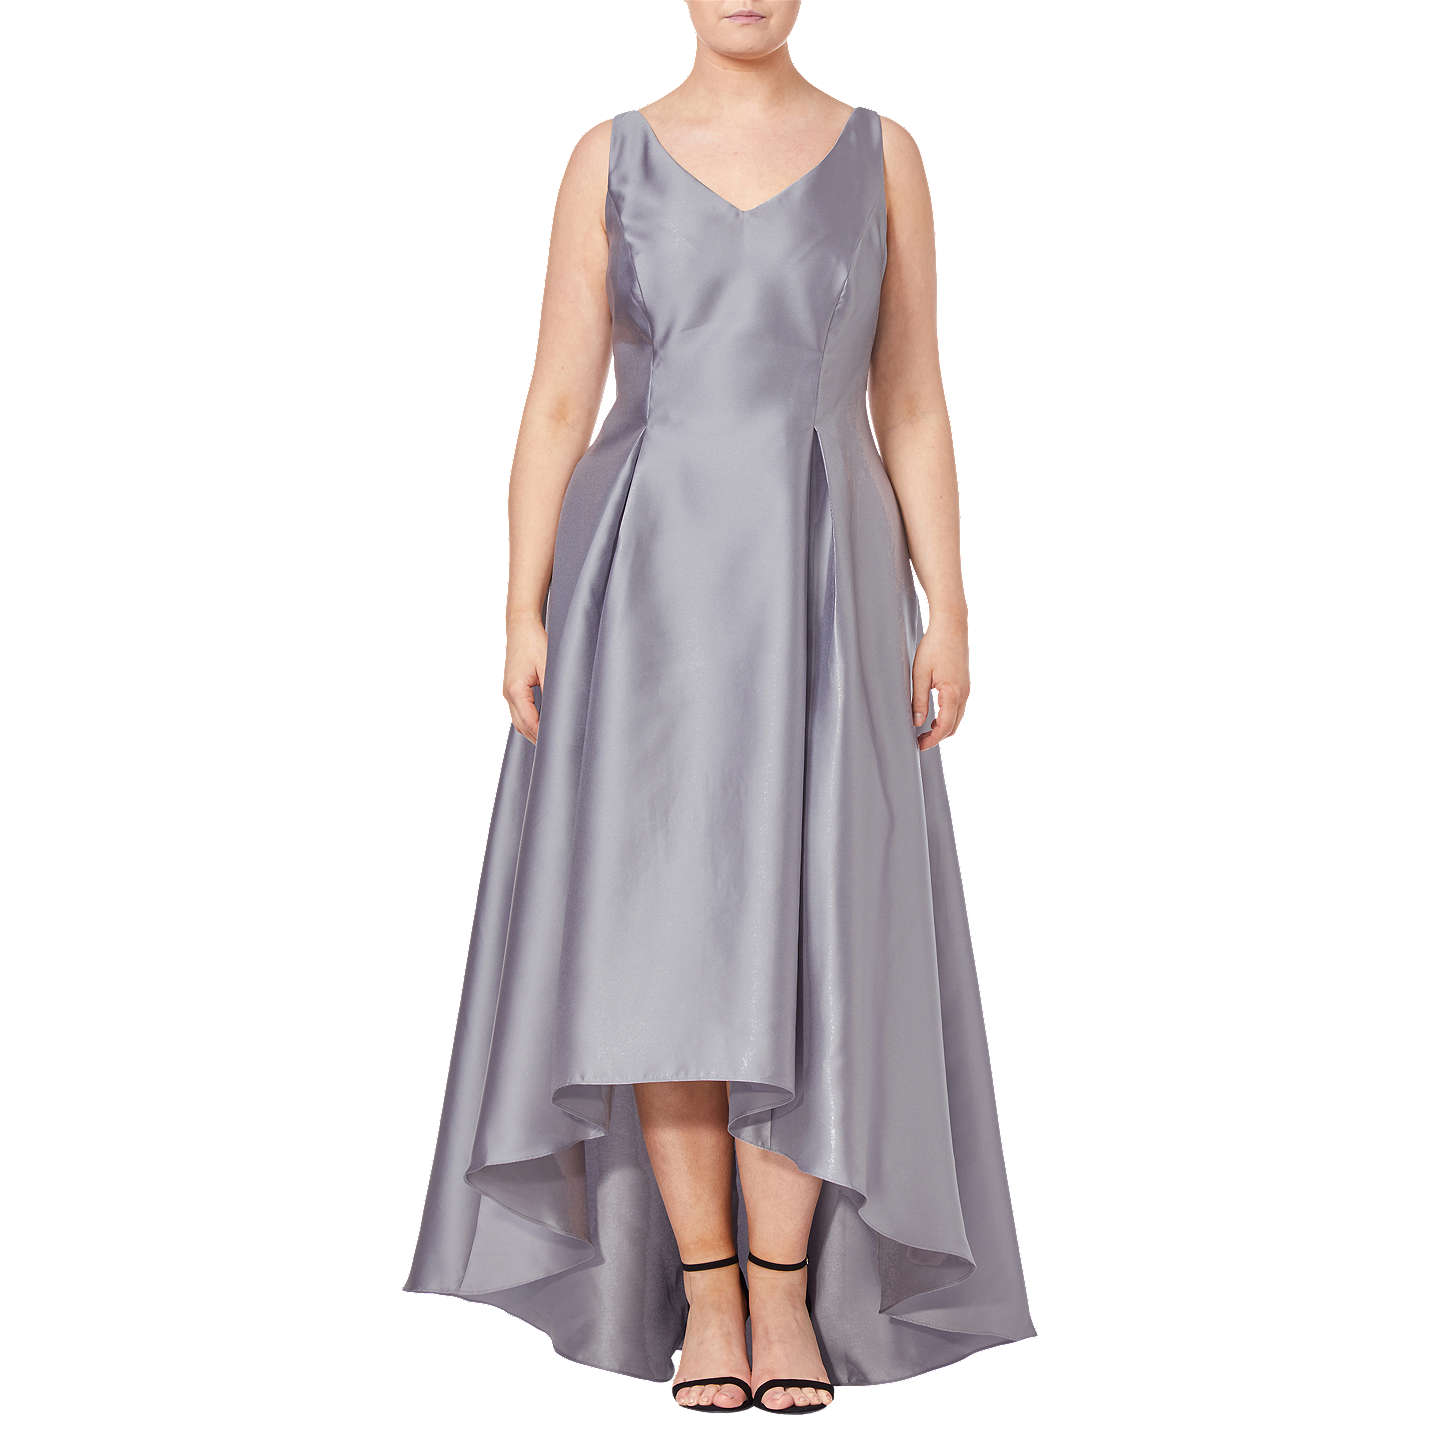 Adrianna Papell Plus Size Sleeveless Long Dress Silver At John Lewis